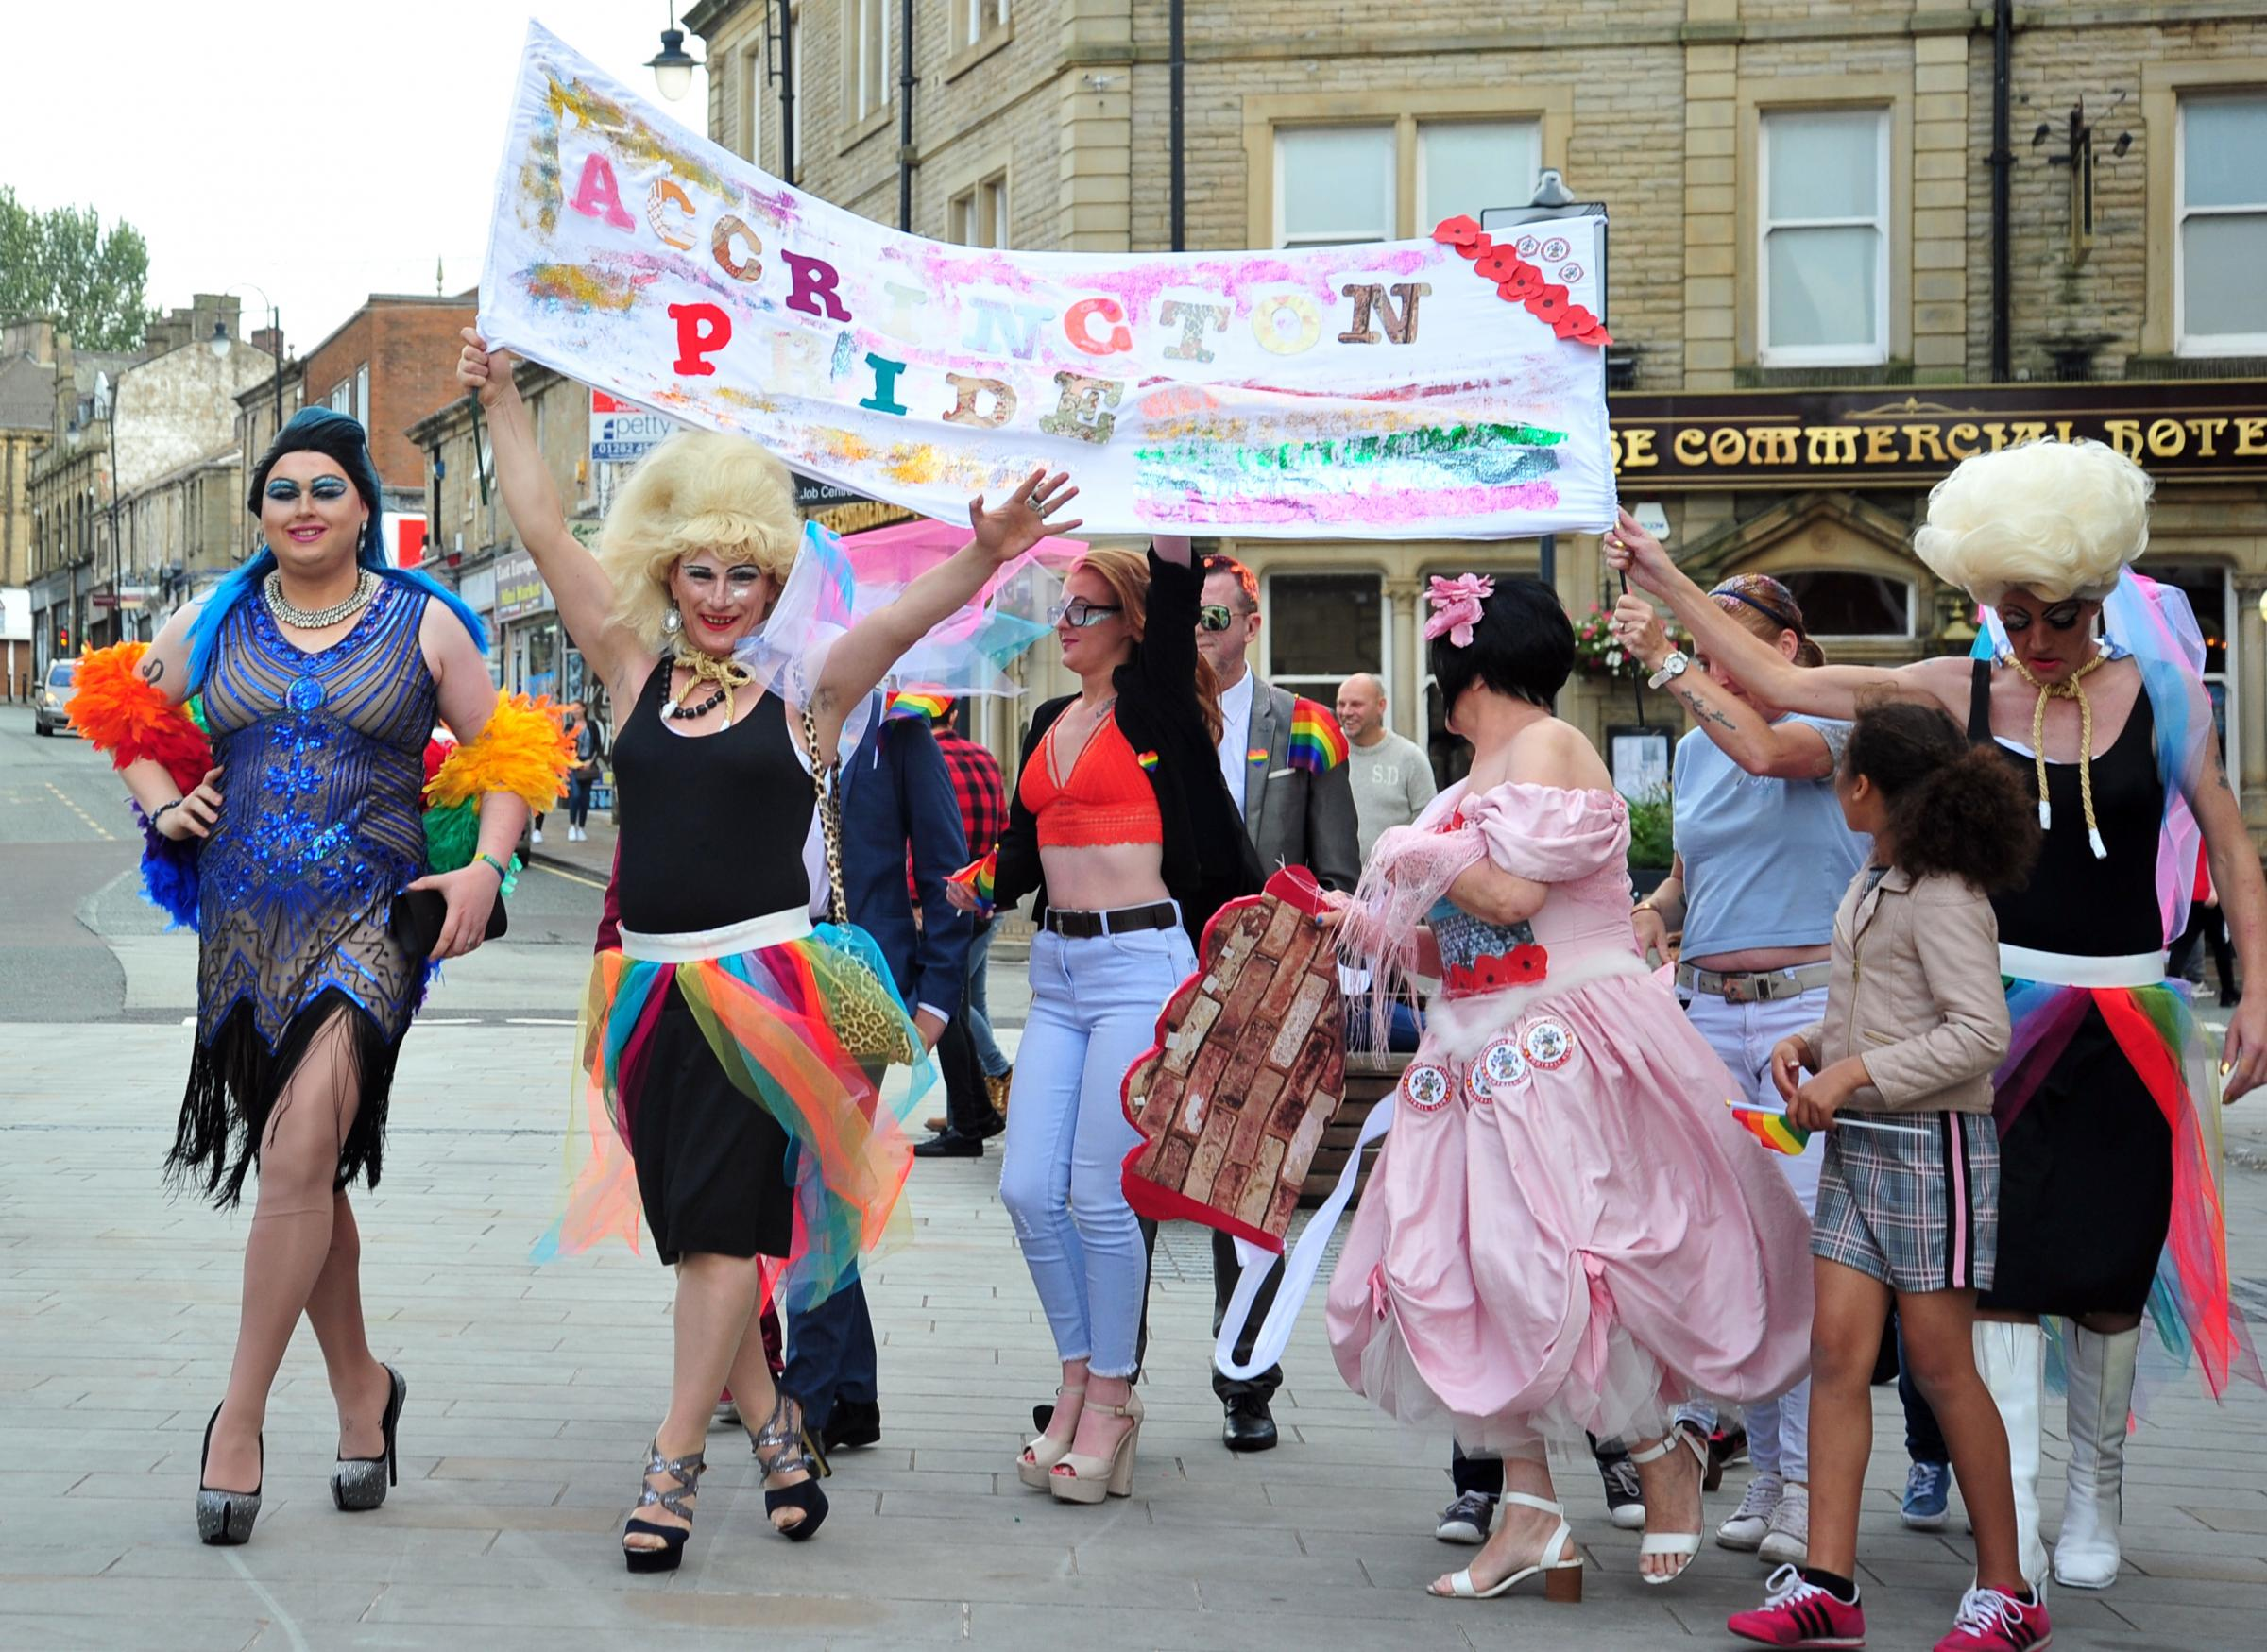 'We're here and we're proud' Town celebrates first ever pride event